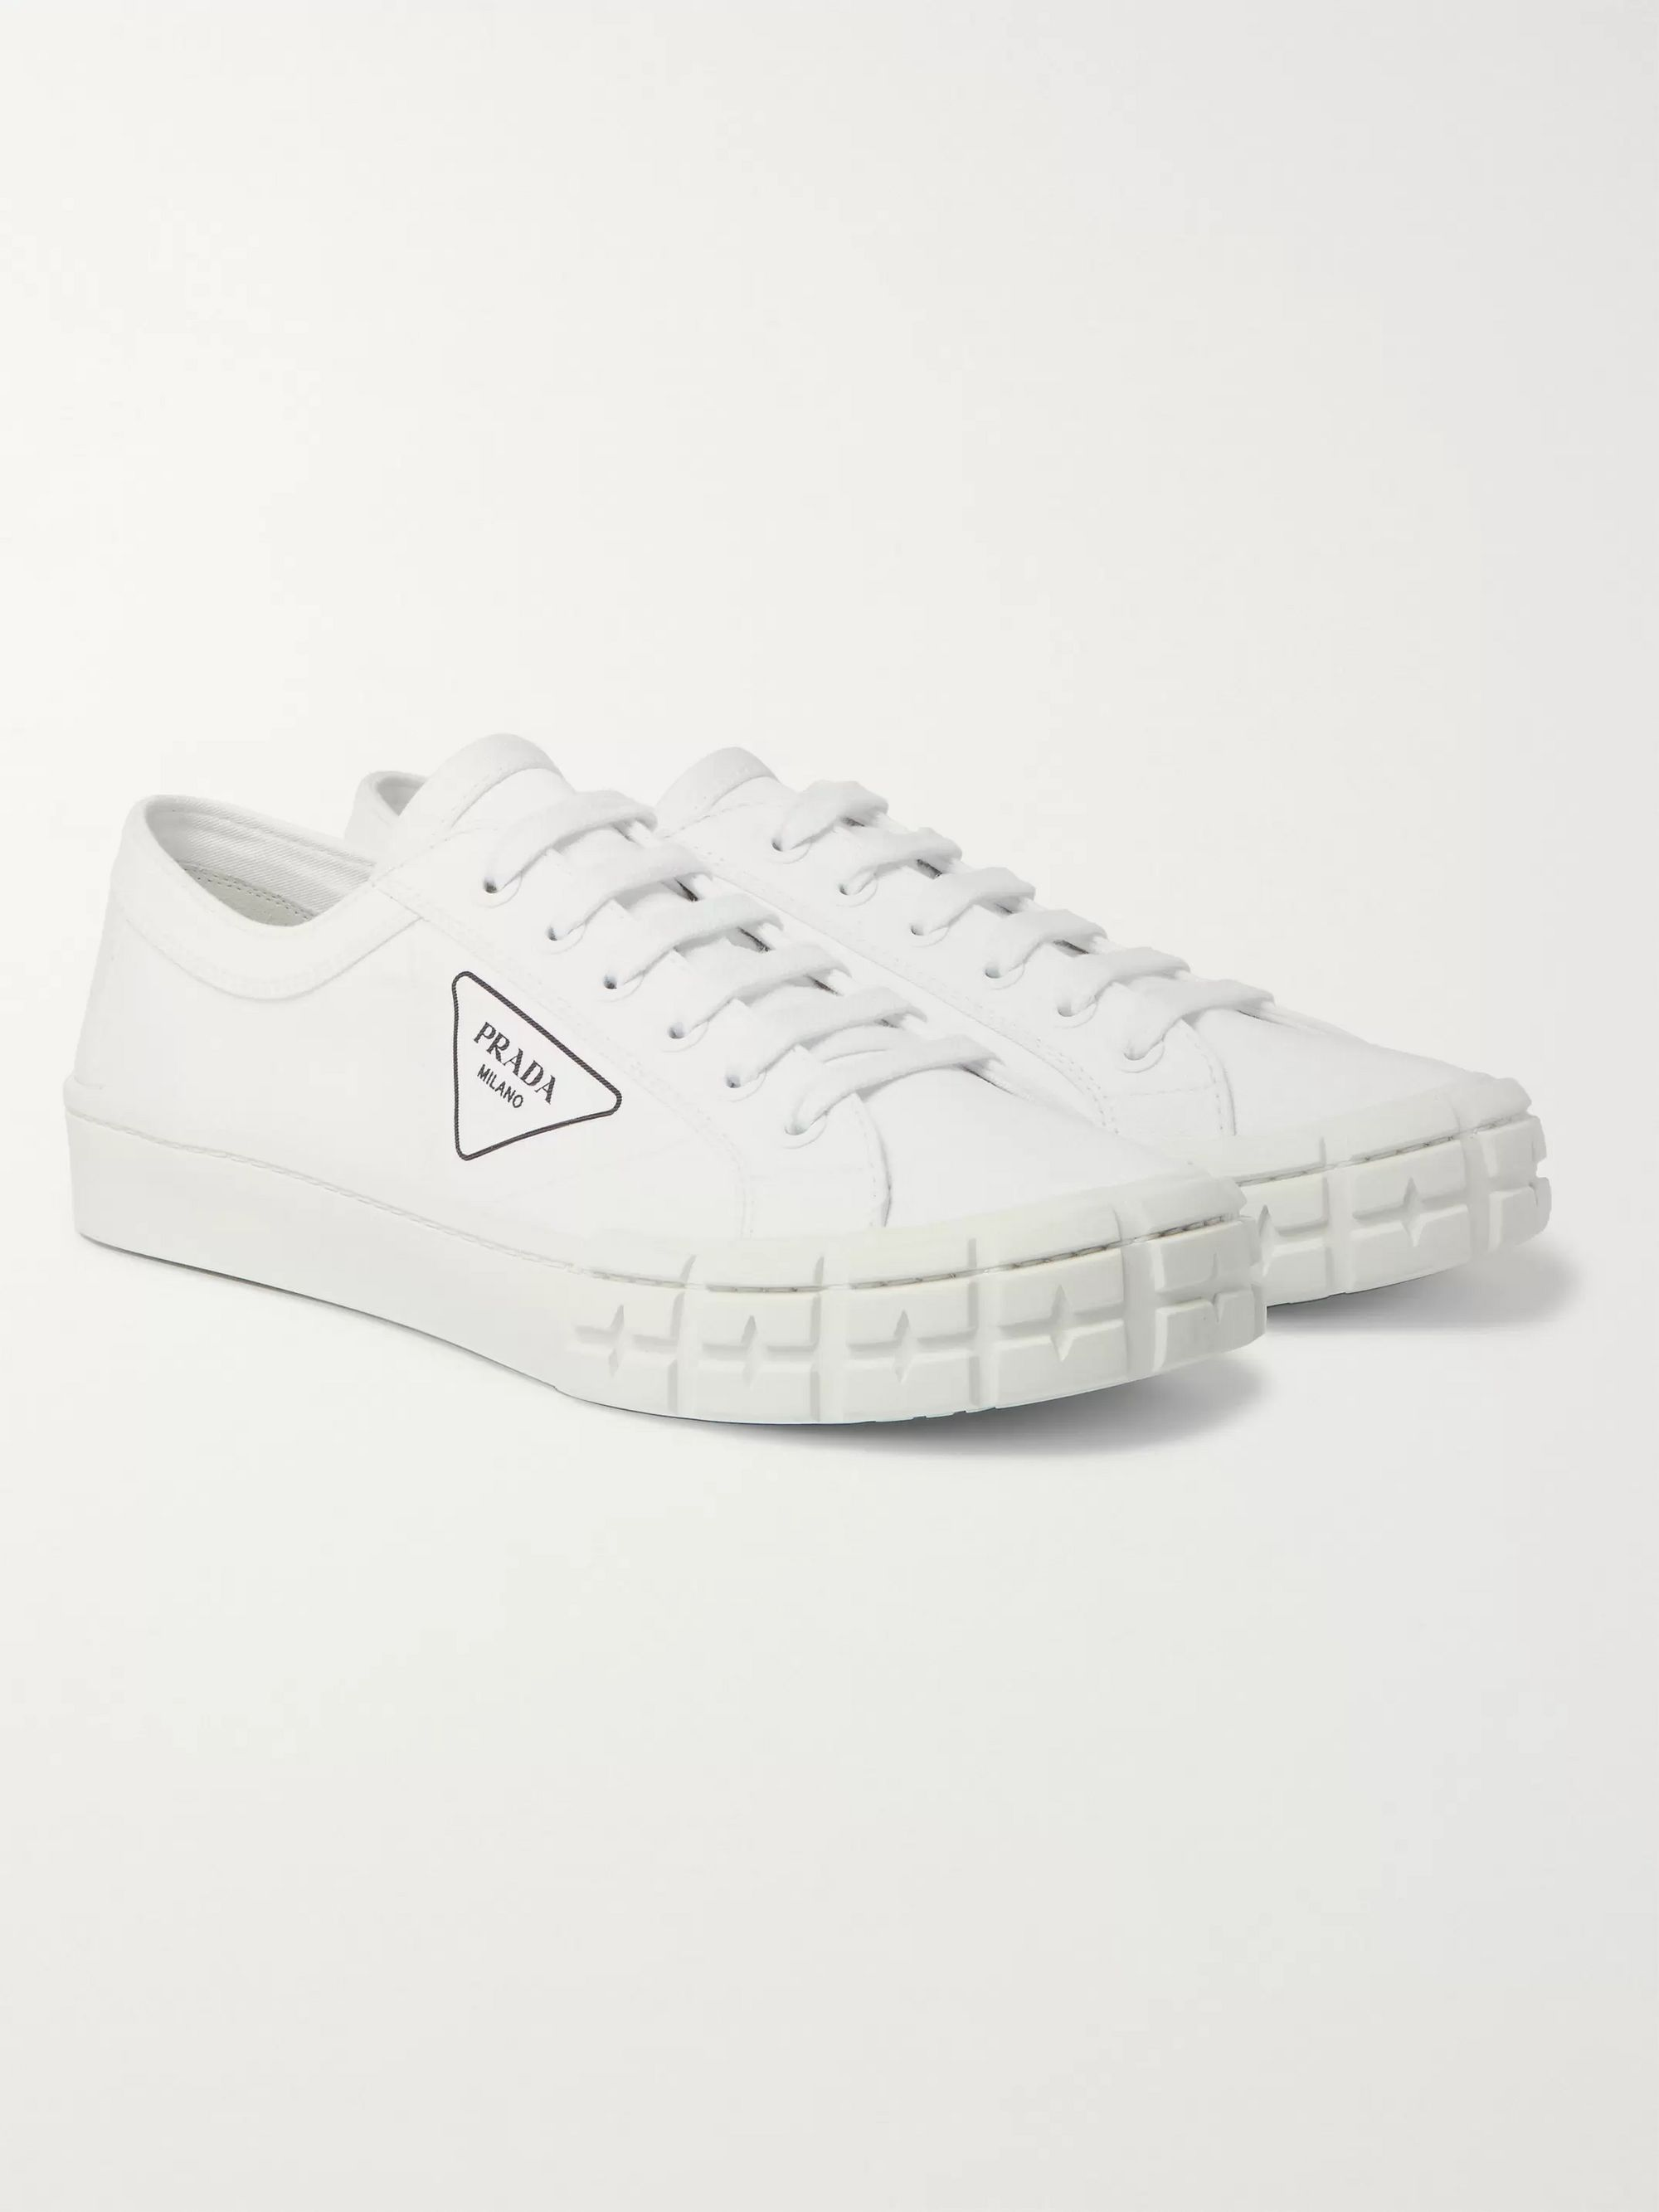 Prada Logo-Print Canvas Sneakers